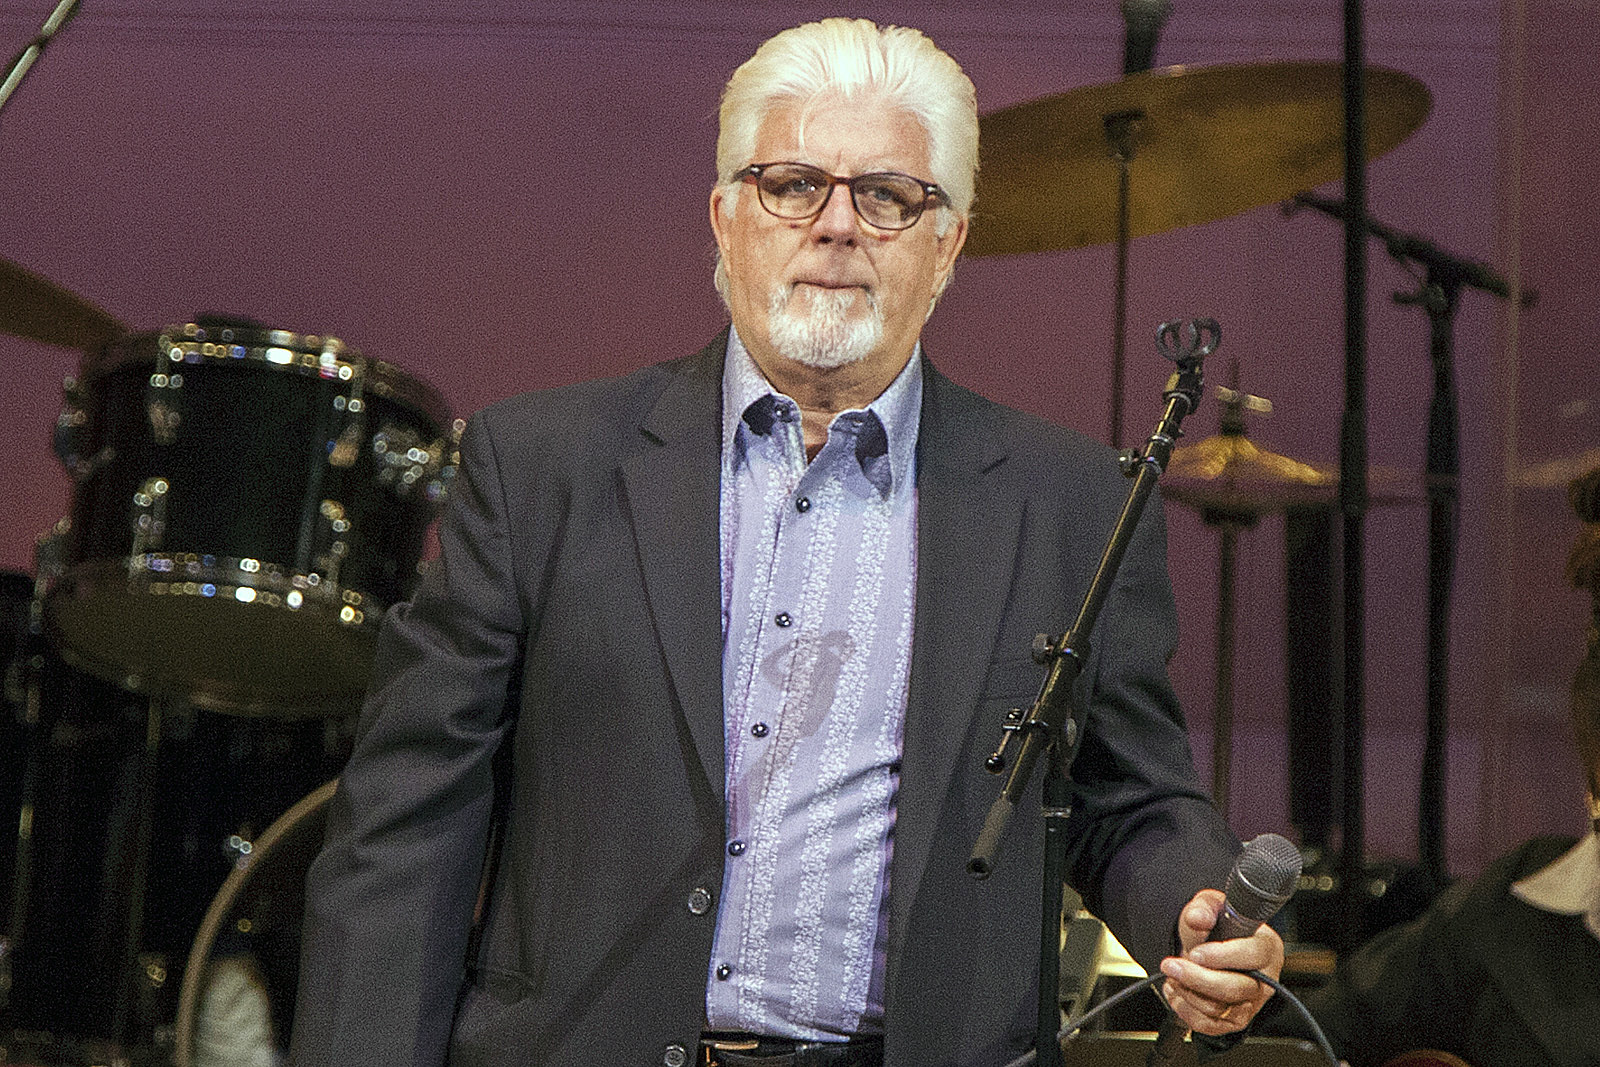 That Time Michael McDonald Thought He'd Doomed the Doobie Brothers